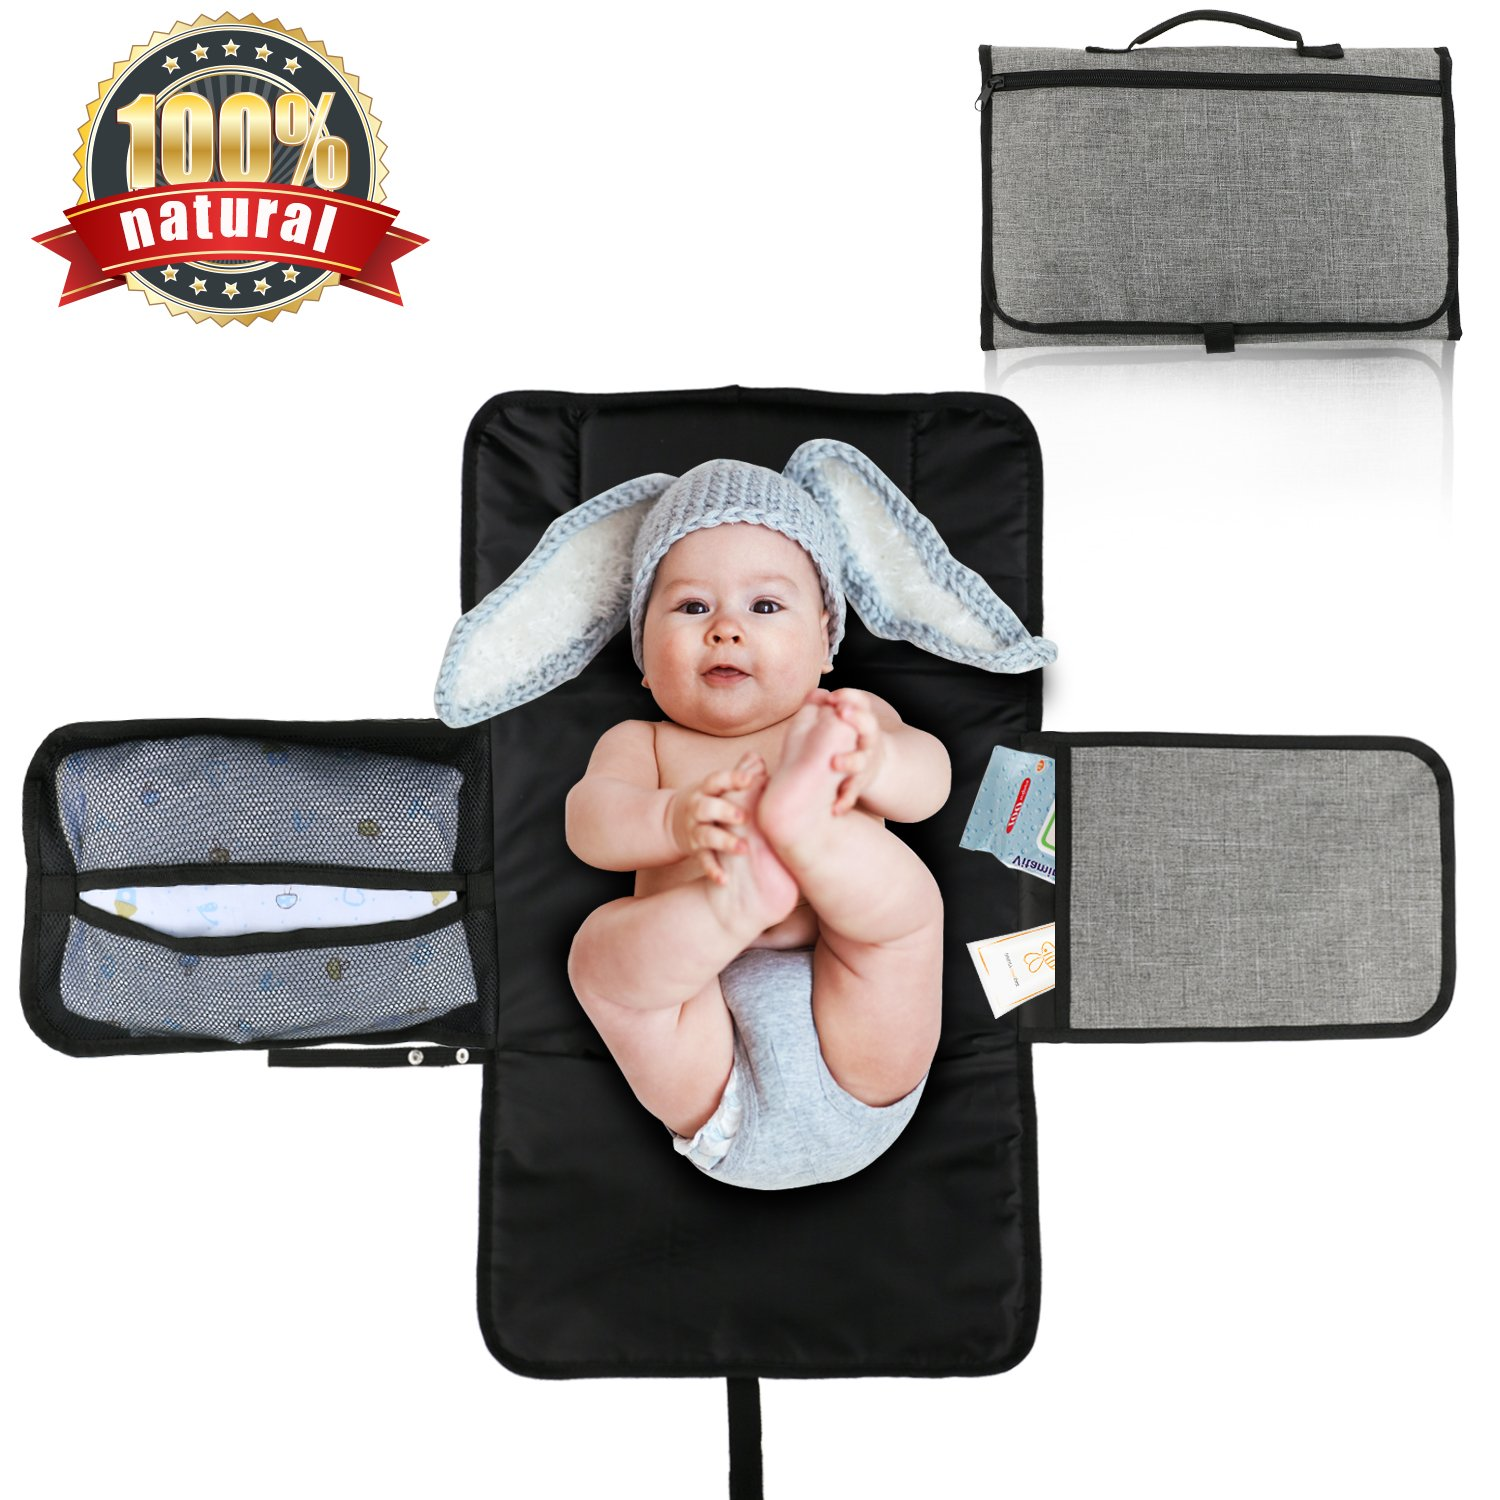 Diaper Pad, CRMICL Portable Diaper Changing Pad, Best Travel Baby Diaper Changing pad Kit, Entirely Padded Mat, Mesh and Pockets PengXuan